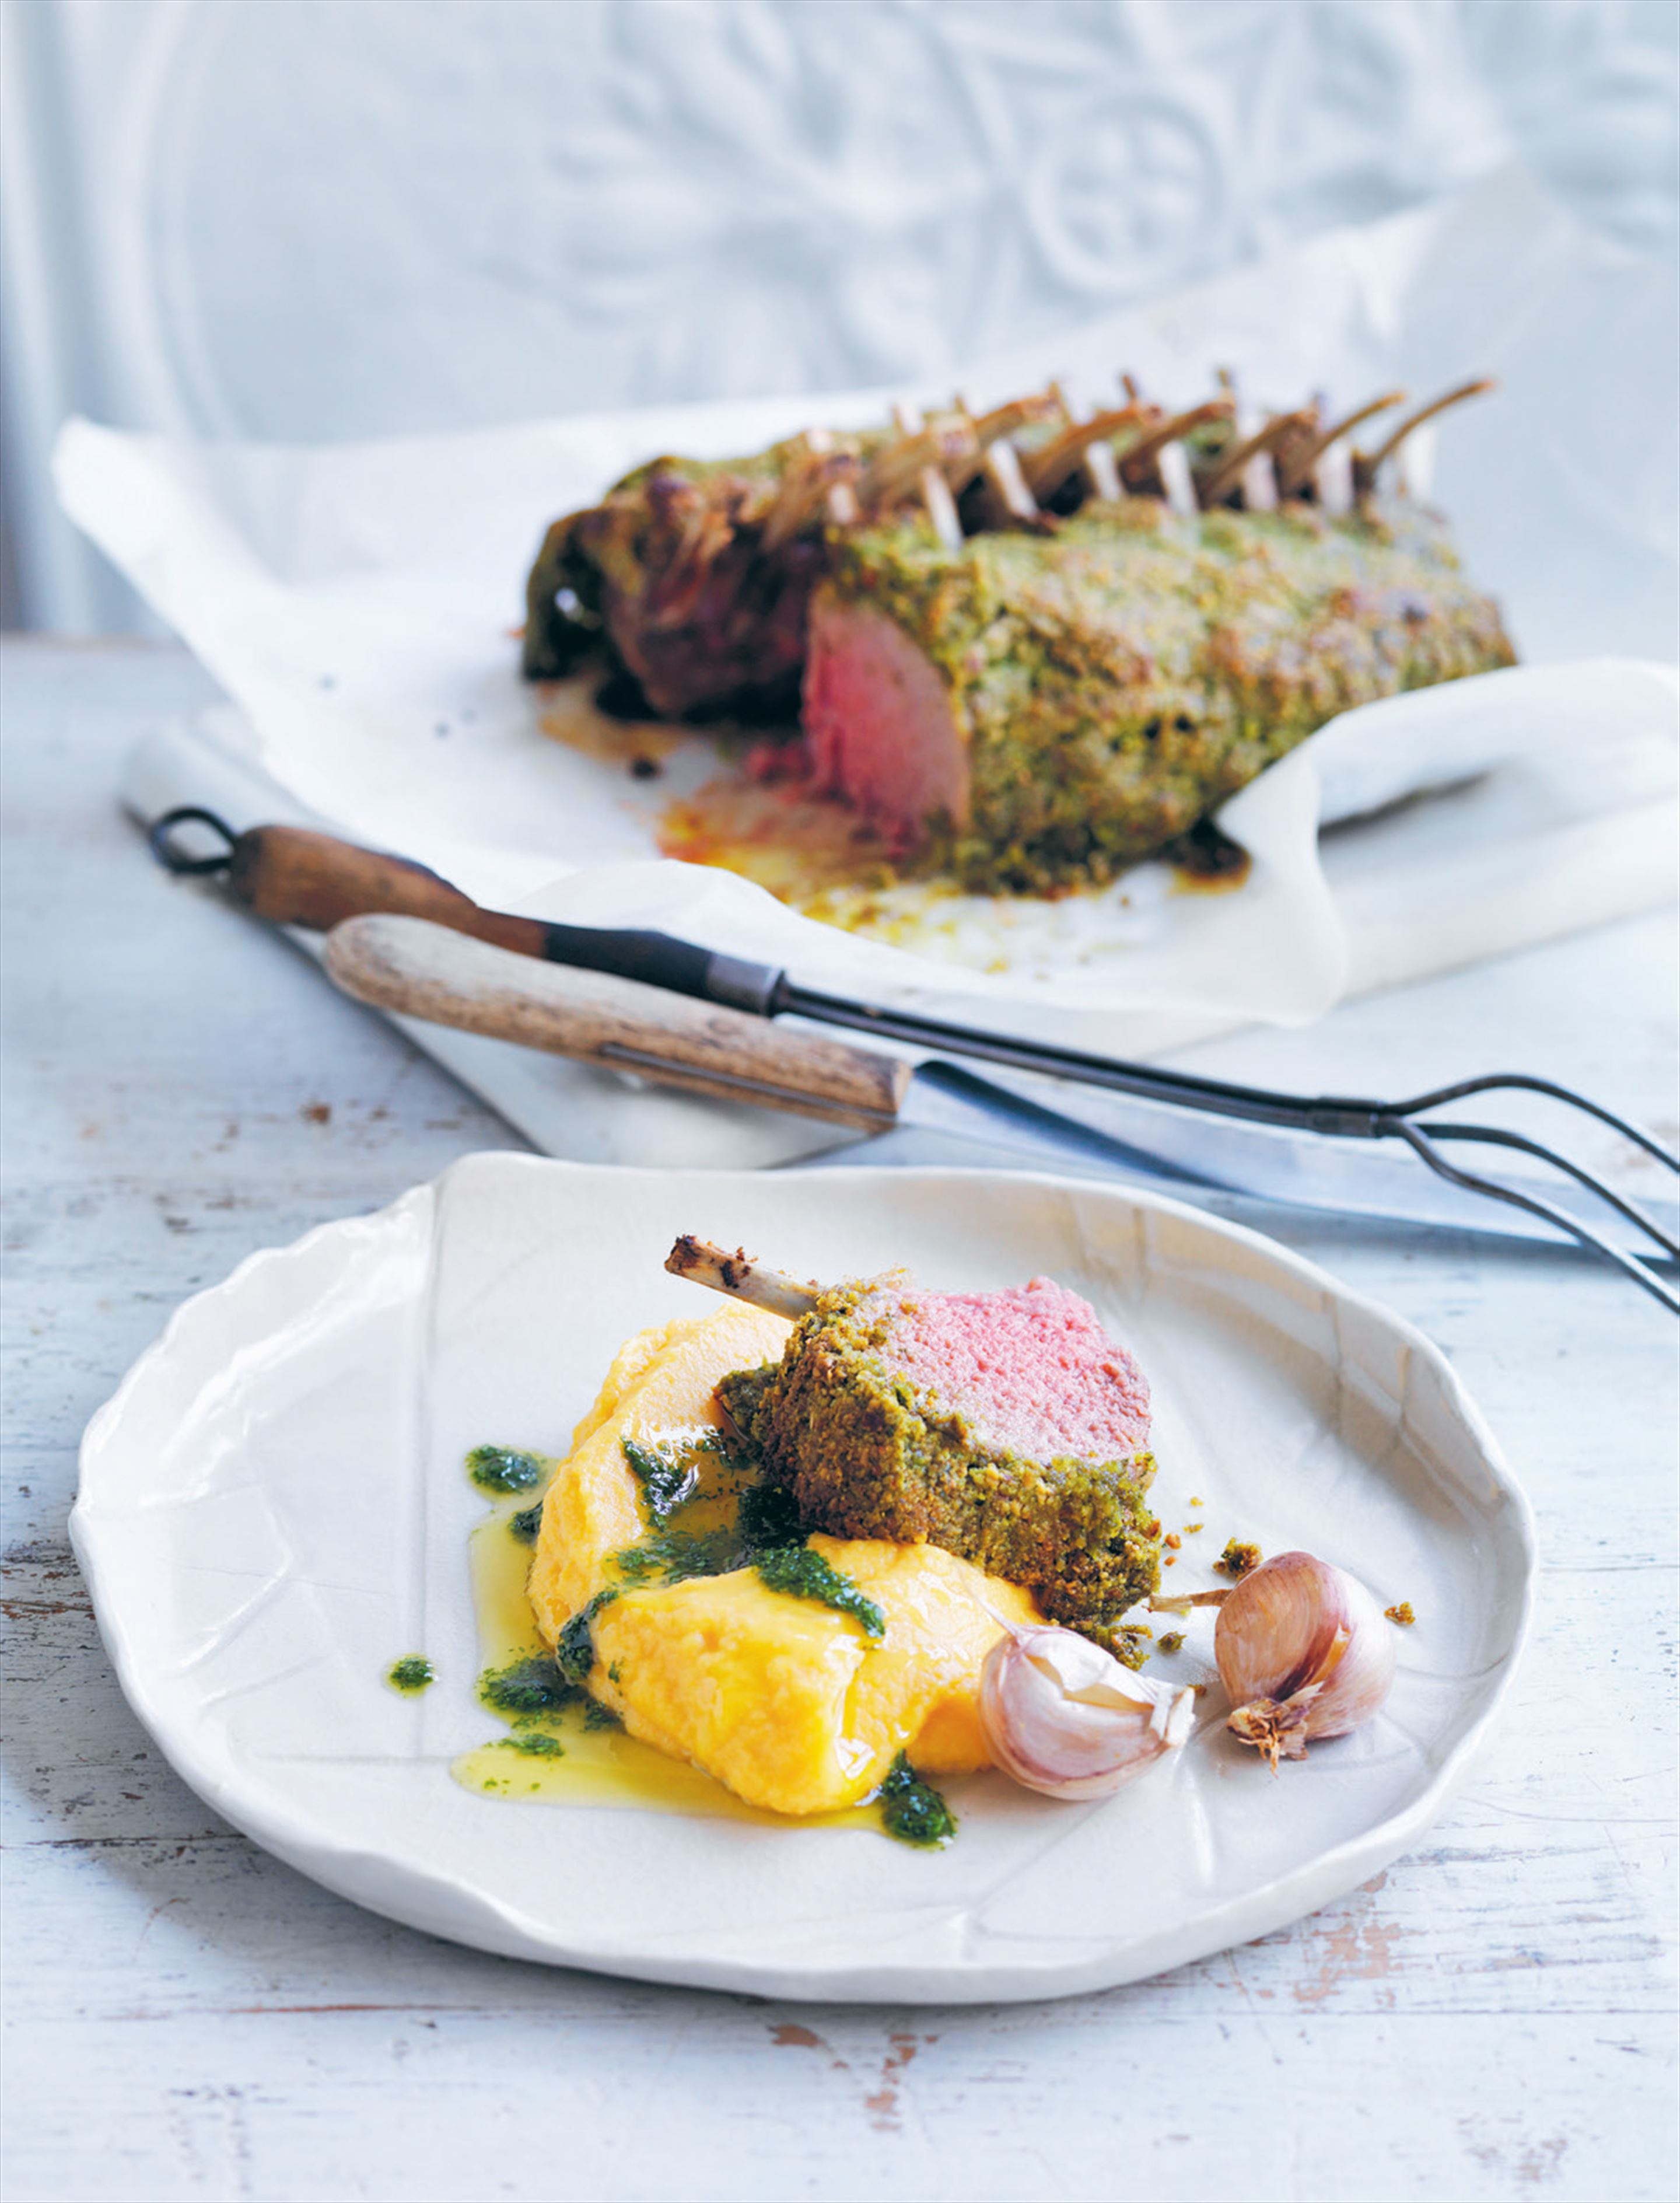 Herb-crusted lamb racks with roast pumpkin and cauliflower purée